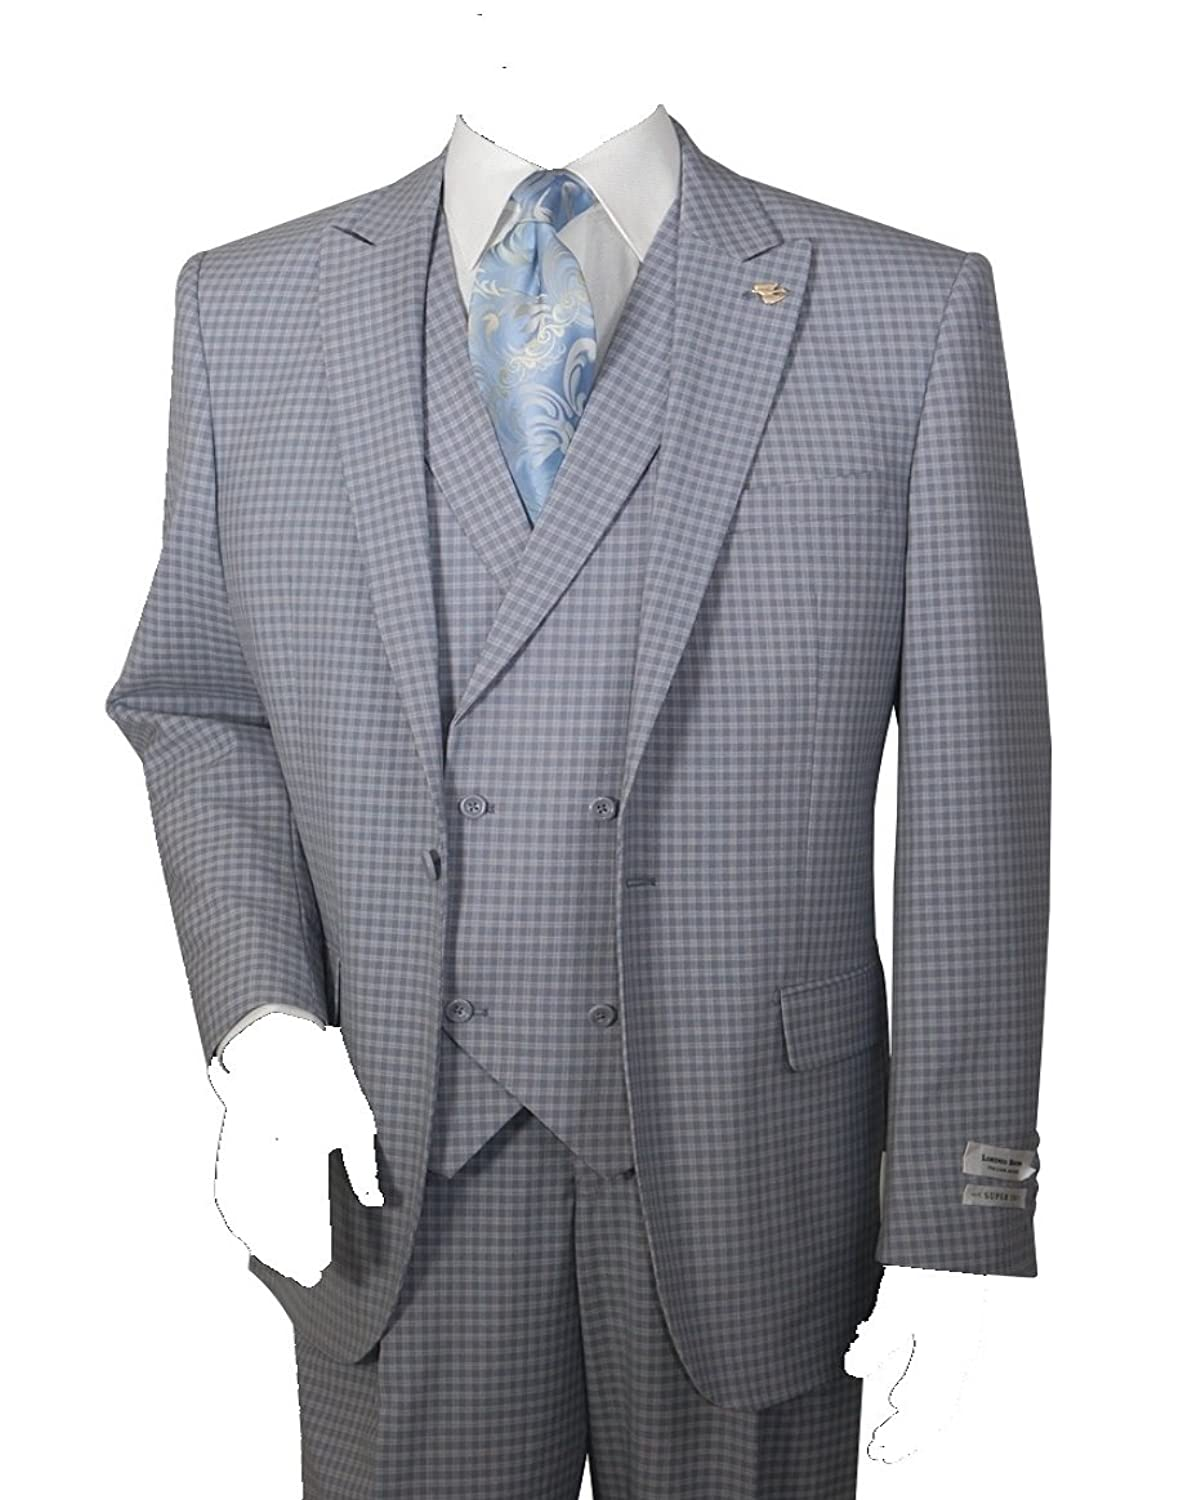 1900s Edwardian Men's Suits and Coats Mens 3 Piece Single Button Mini-Plaid Pattern Suit (Gray) $149.00 AT vintagedancer.com